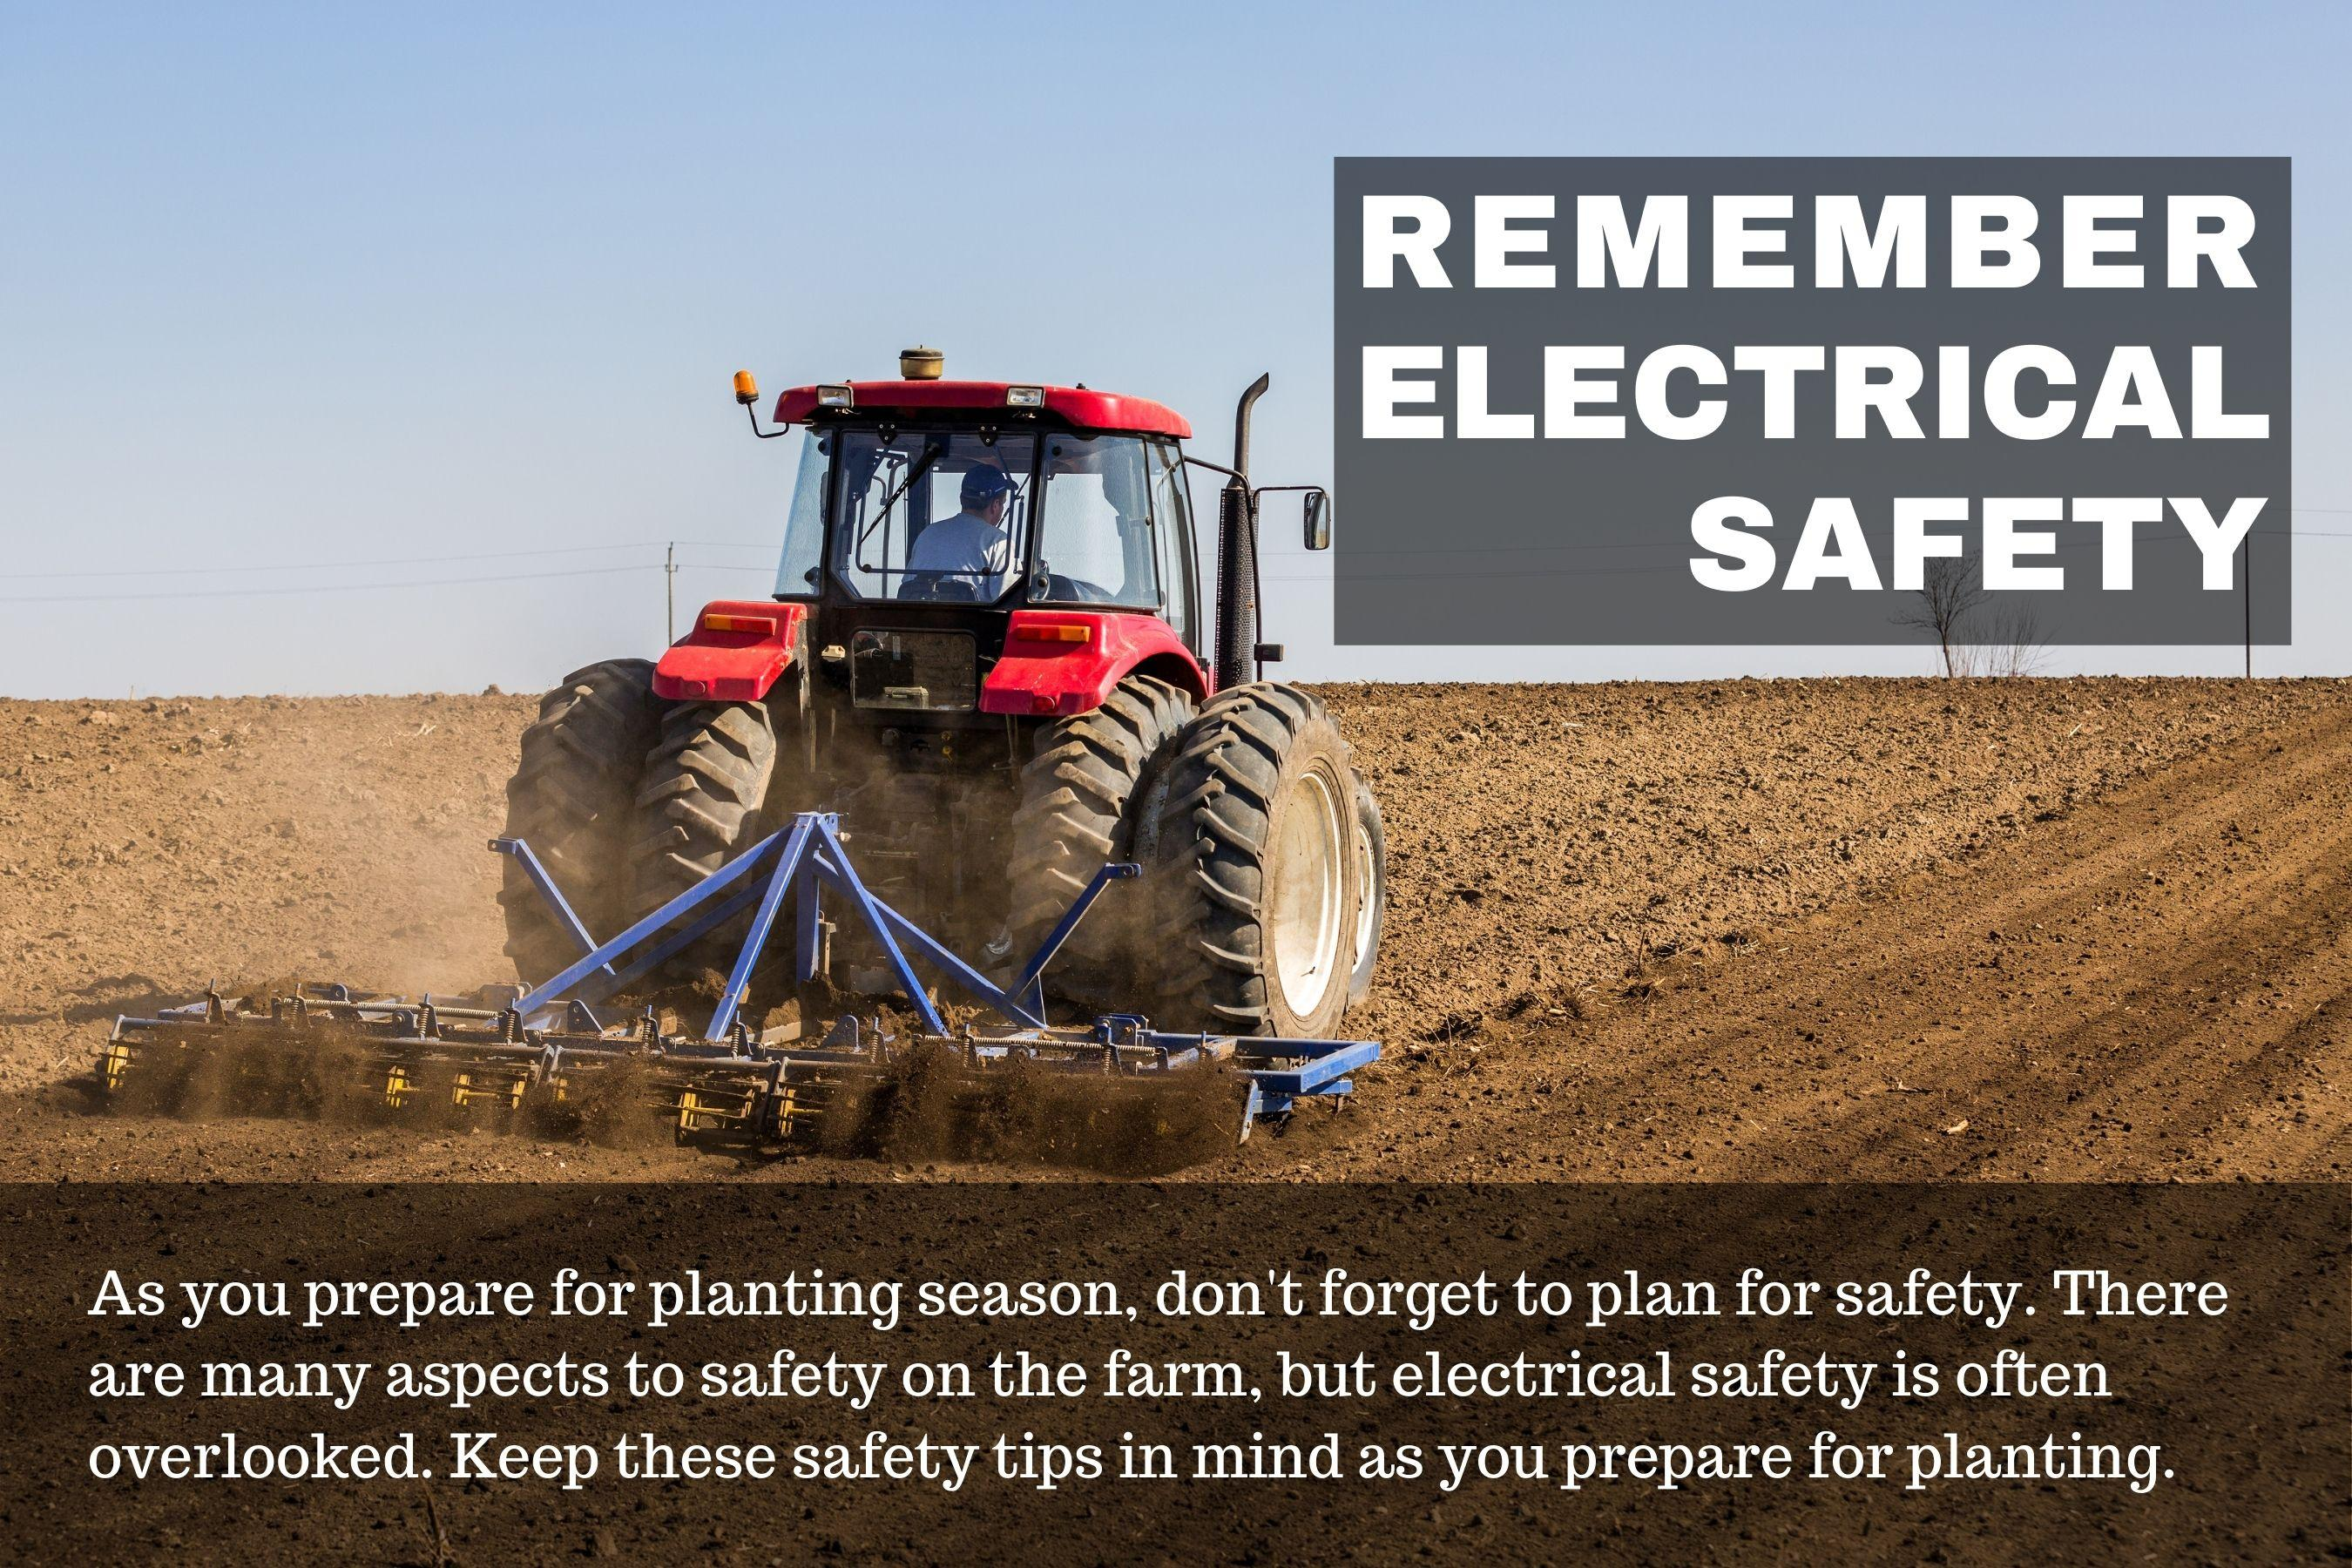 Electrical-Safety-Image-with-Text-rs.jpg?mtime=20210421092052#asset:4849